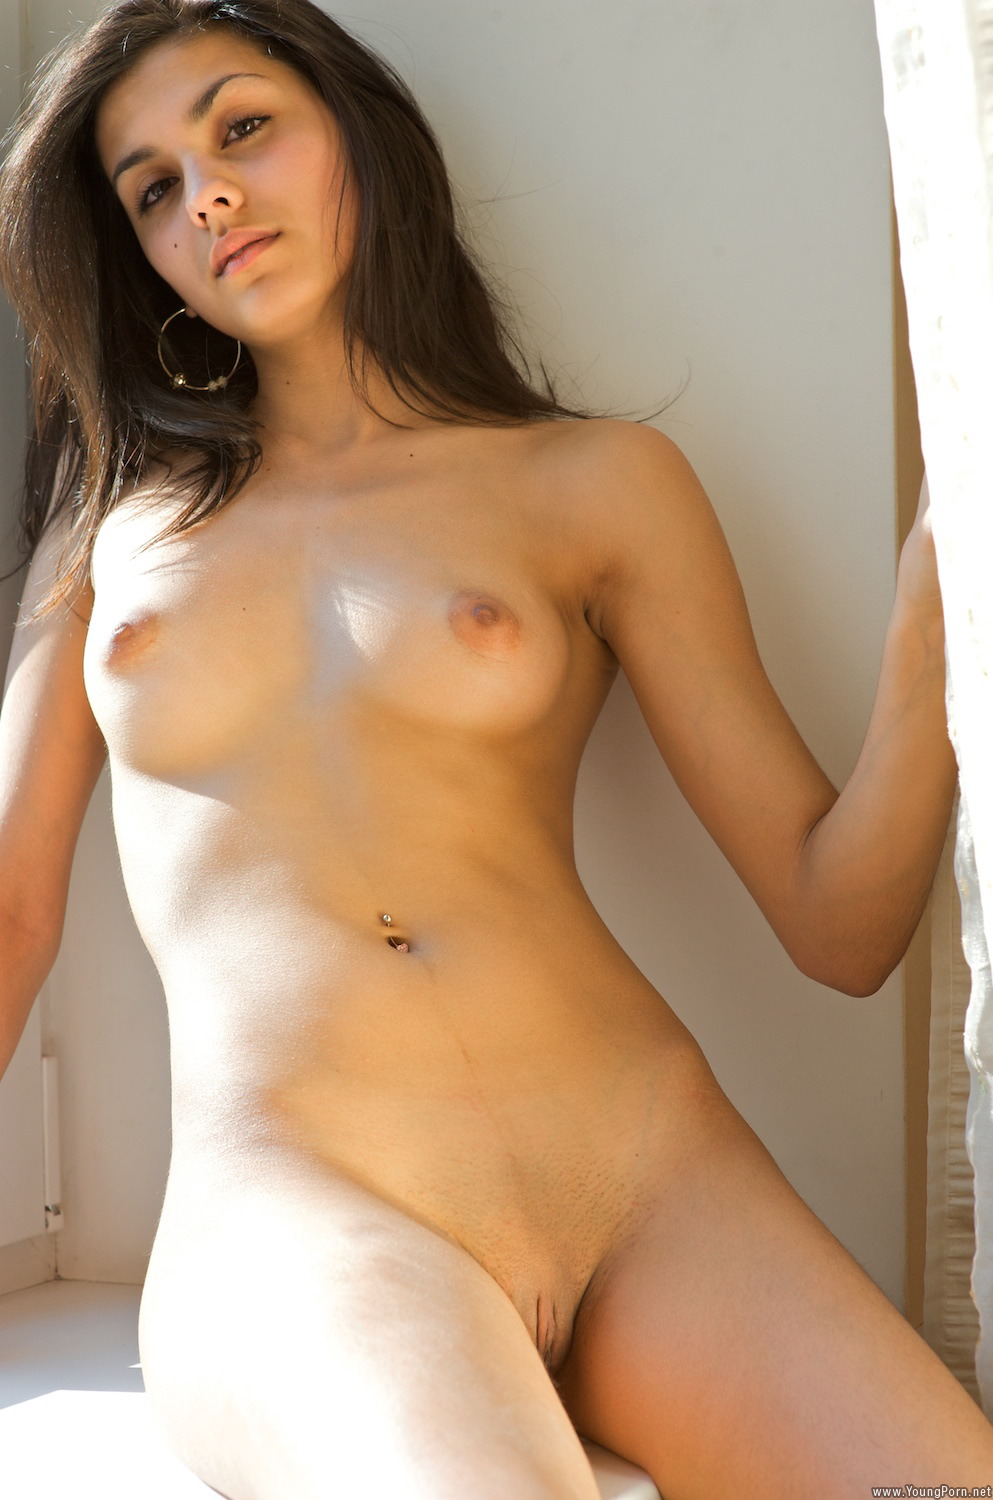 My Xzone Nude Indian Girls -2-2786